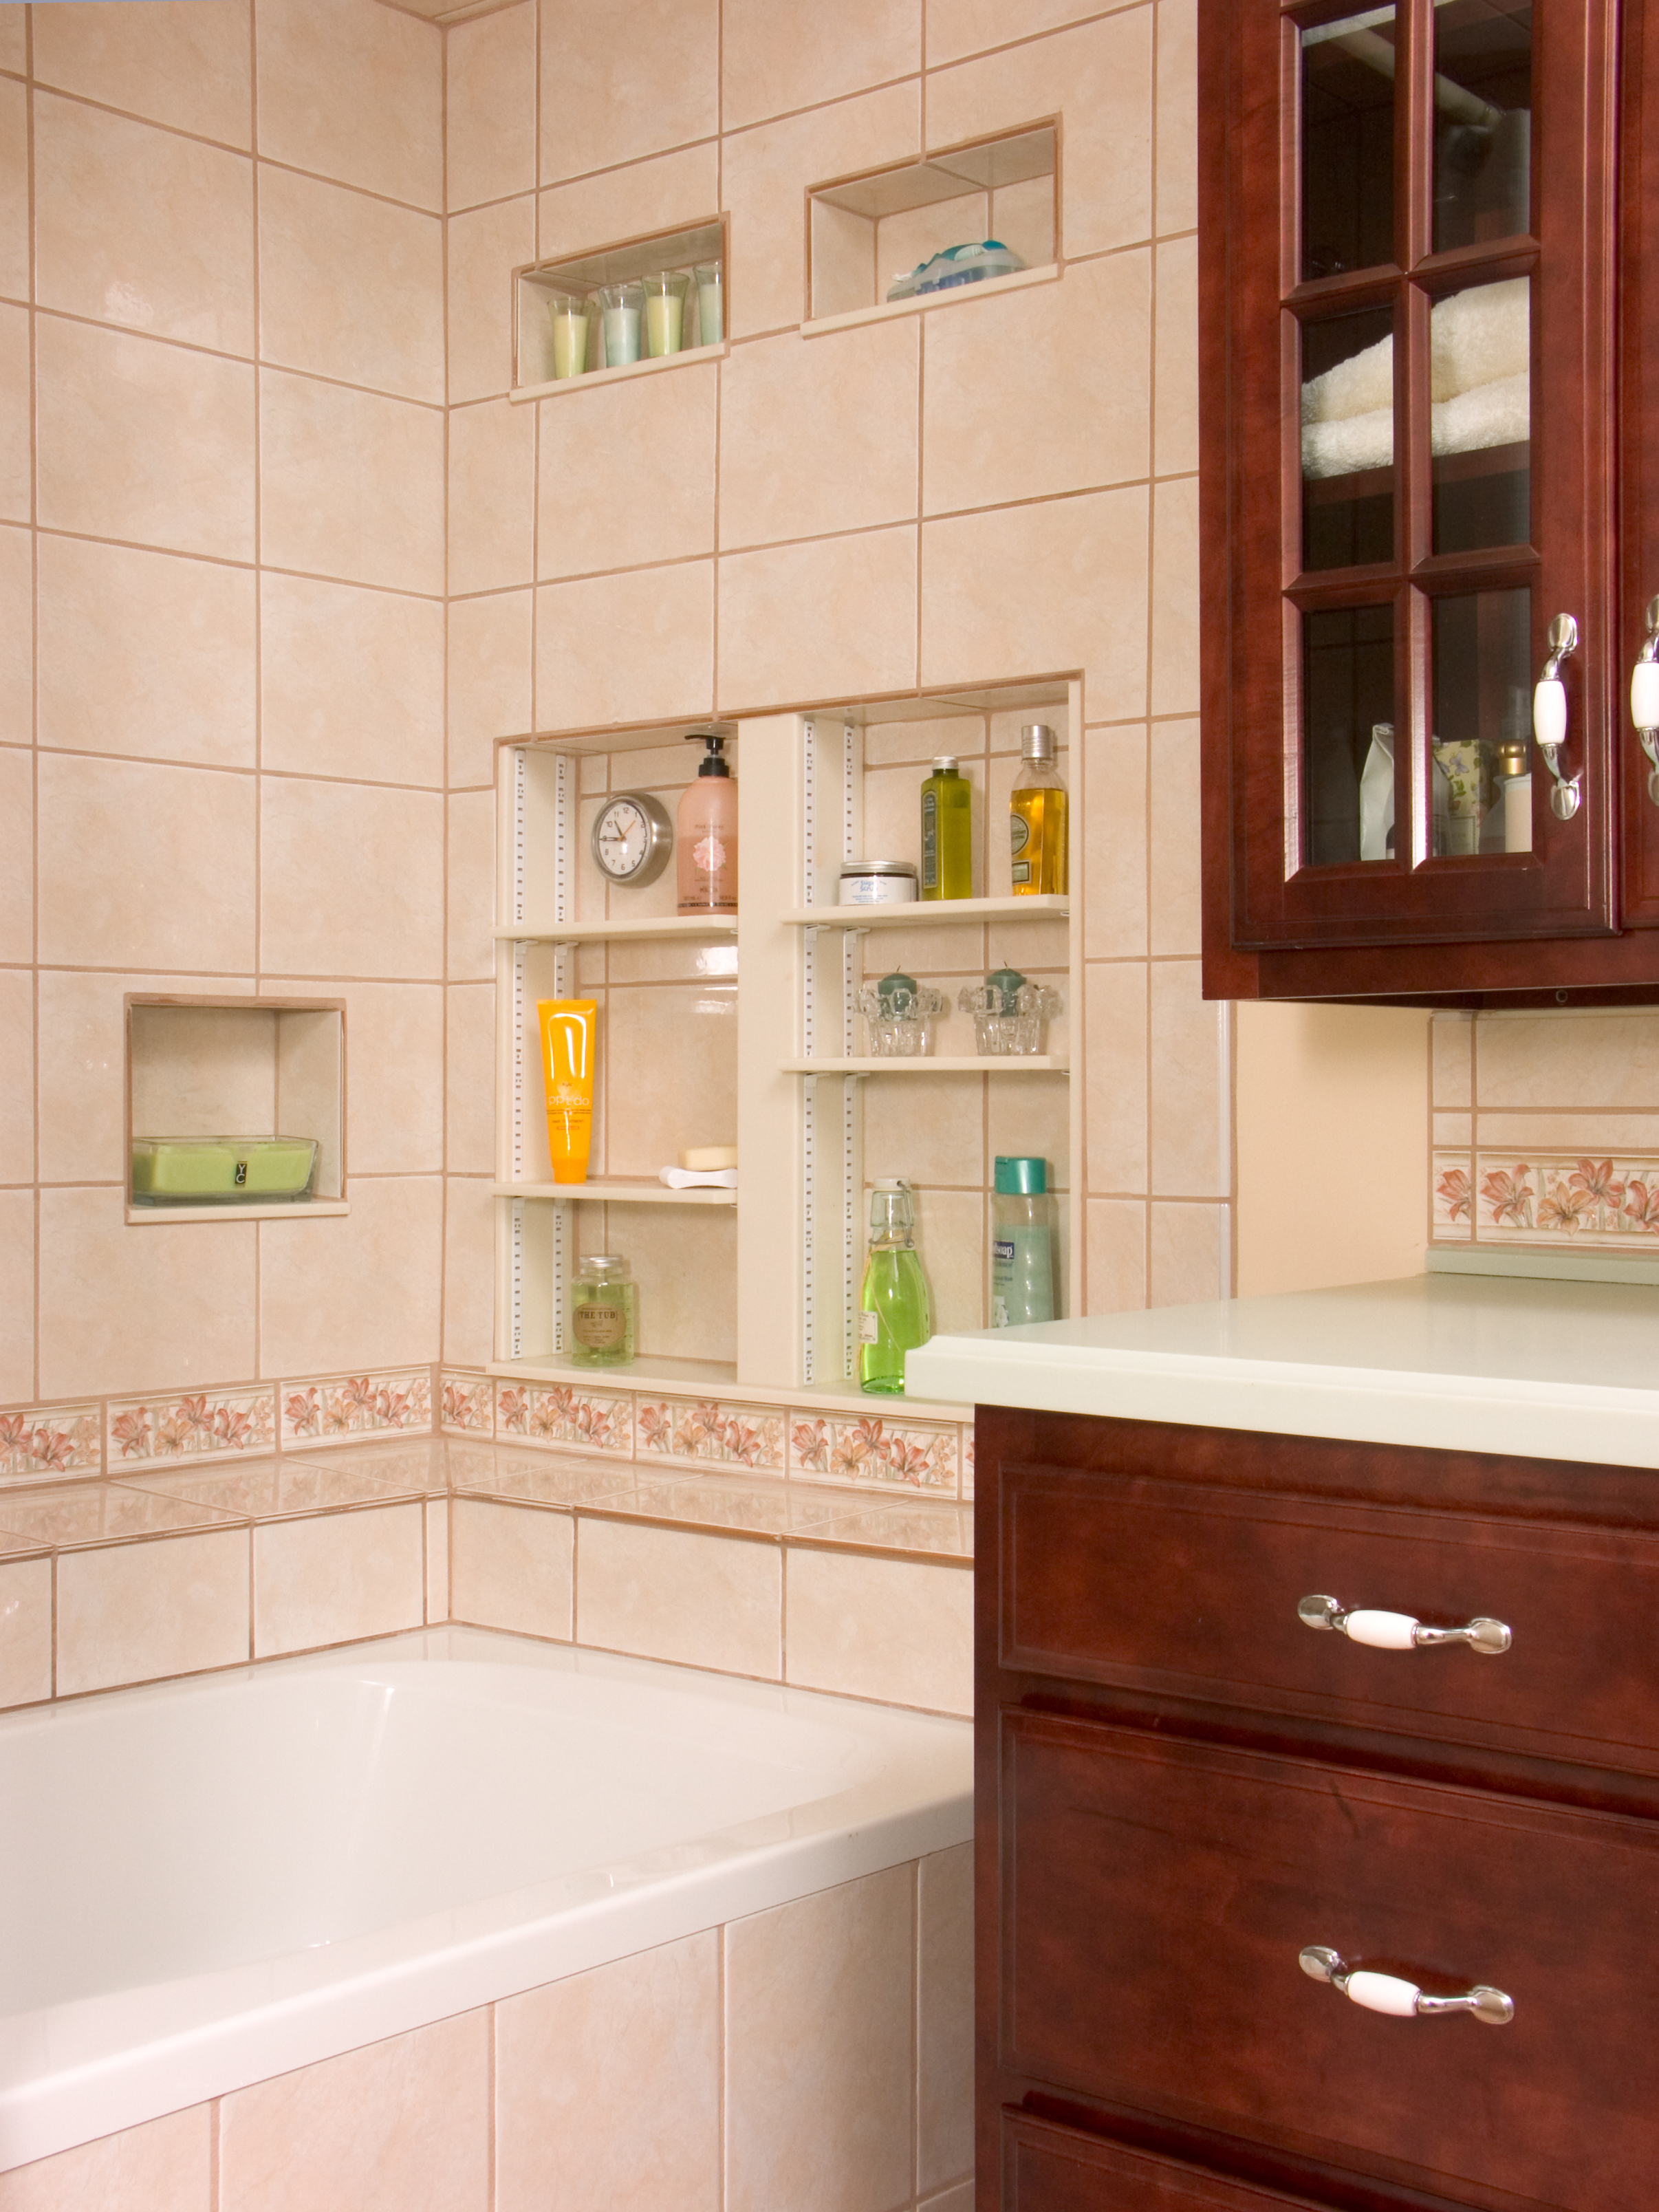 BATHROOMS Janu 18 Spiker-004.JPG